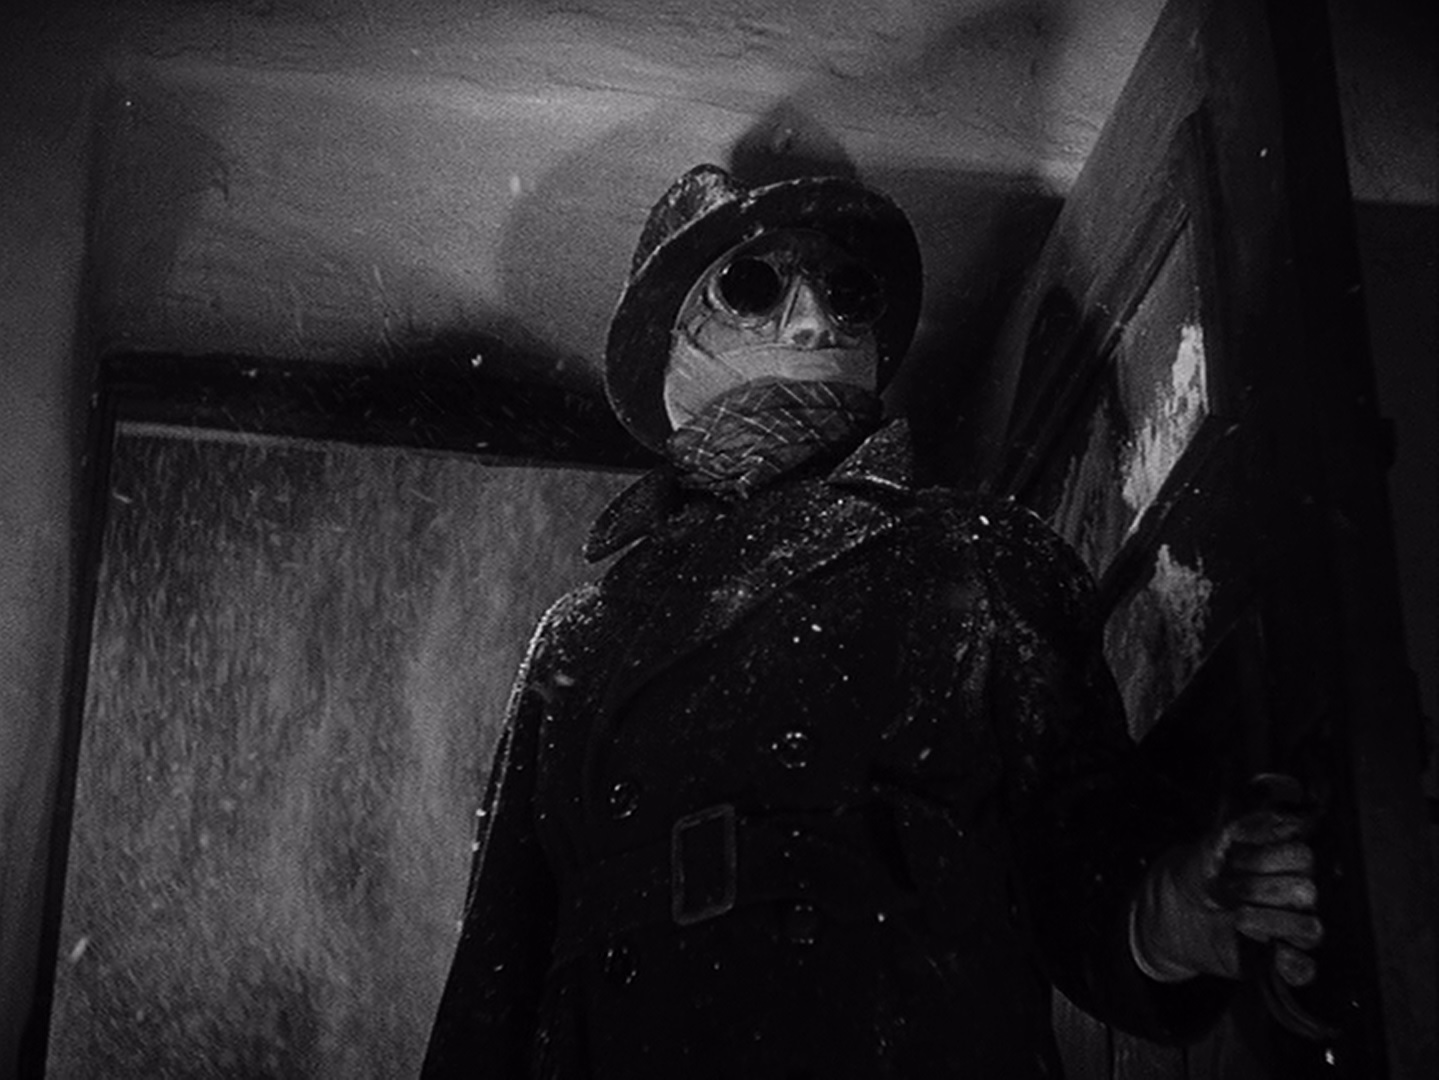 https://midnitereviews.com/wp-content/uploads/2016/10/The-Invisible-Man-1933.jpg